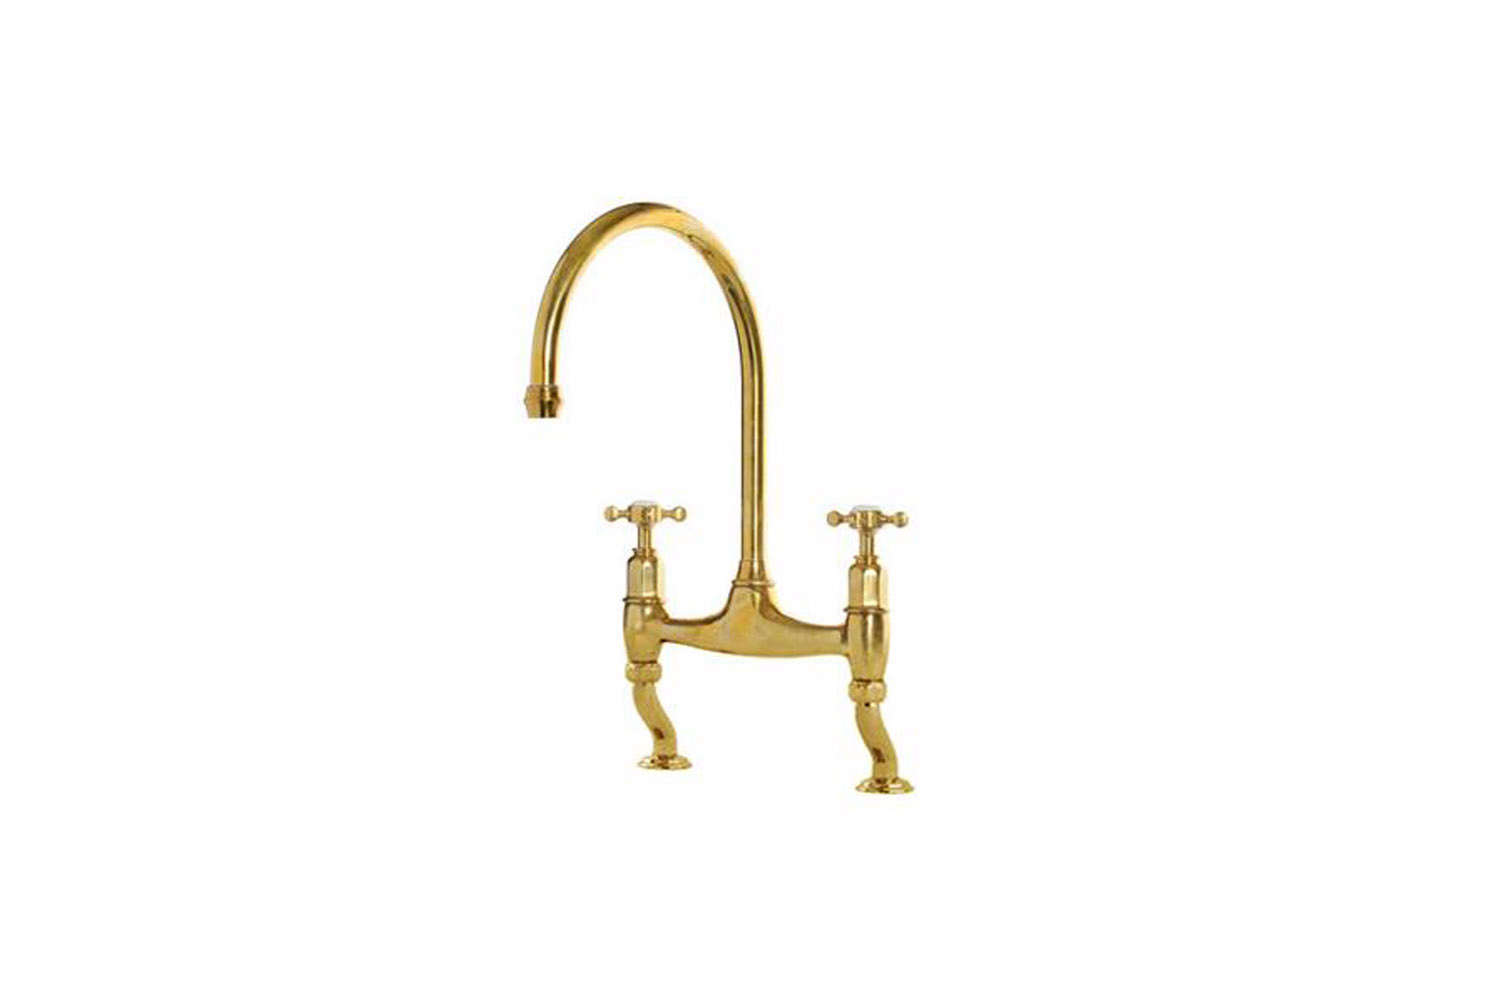 The deVOL Aged Brass Ionian Tap by Perrin & Rowe is $loading=